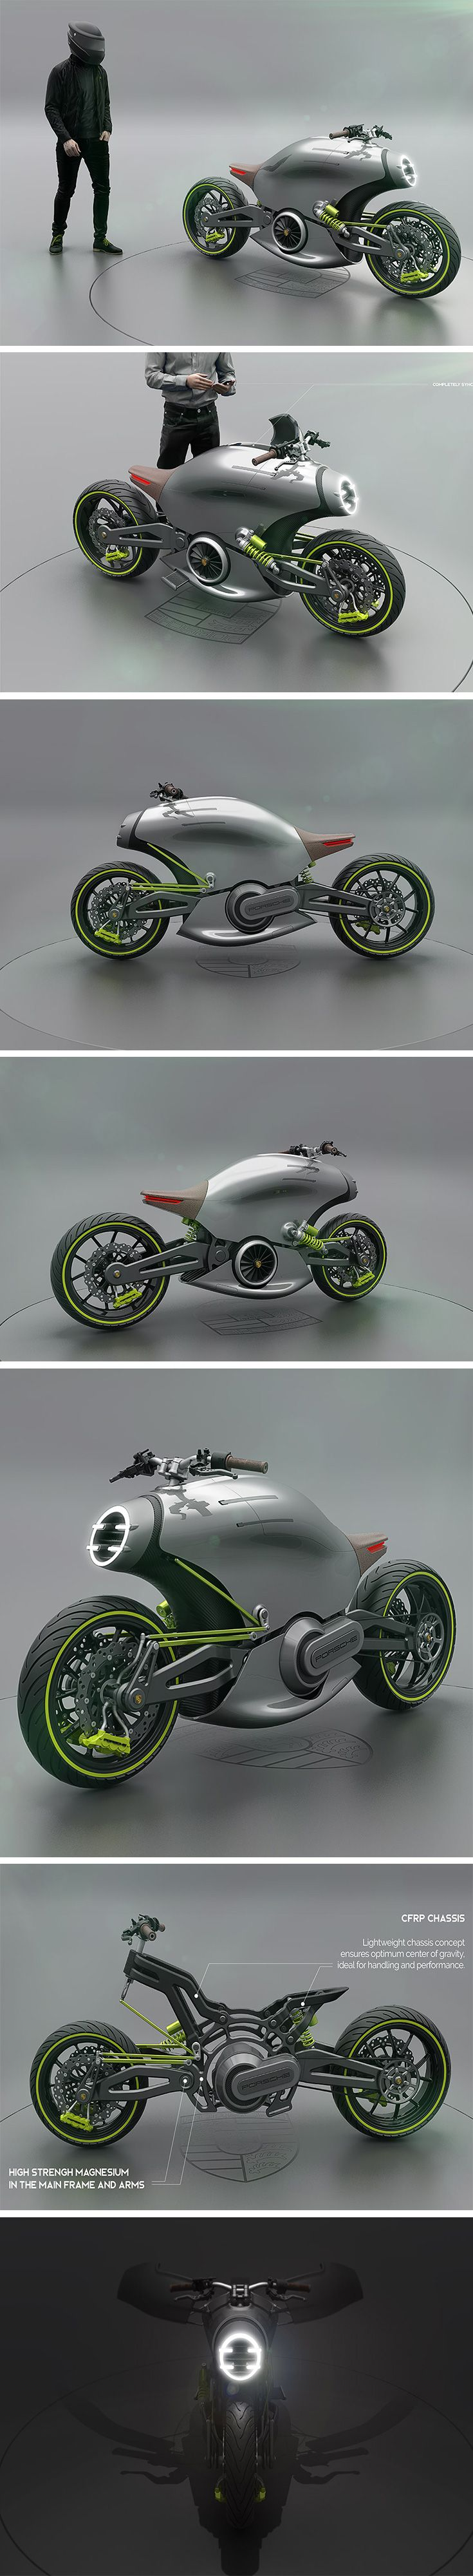 The 618 is a two-wheeled twist on the Porsche brand that takes direct inspiration from the 911 turbo. The result is an electric retro-modern power cruiser with a sporty silhouette that essentially looks like half a Porsche sportscar!